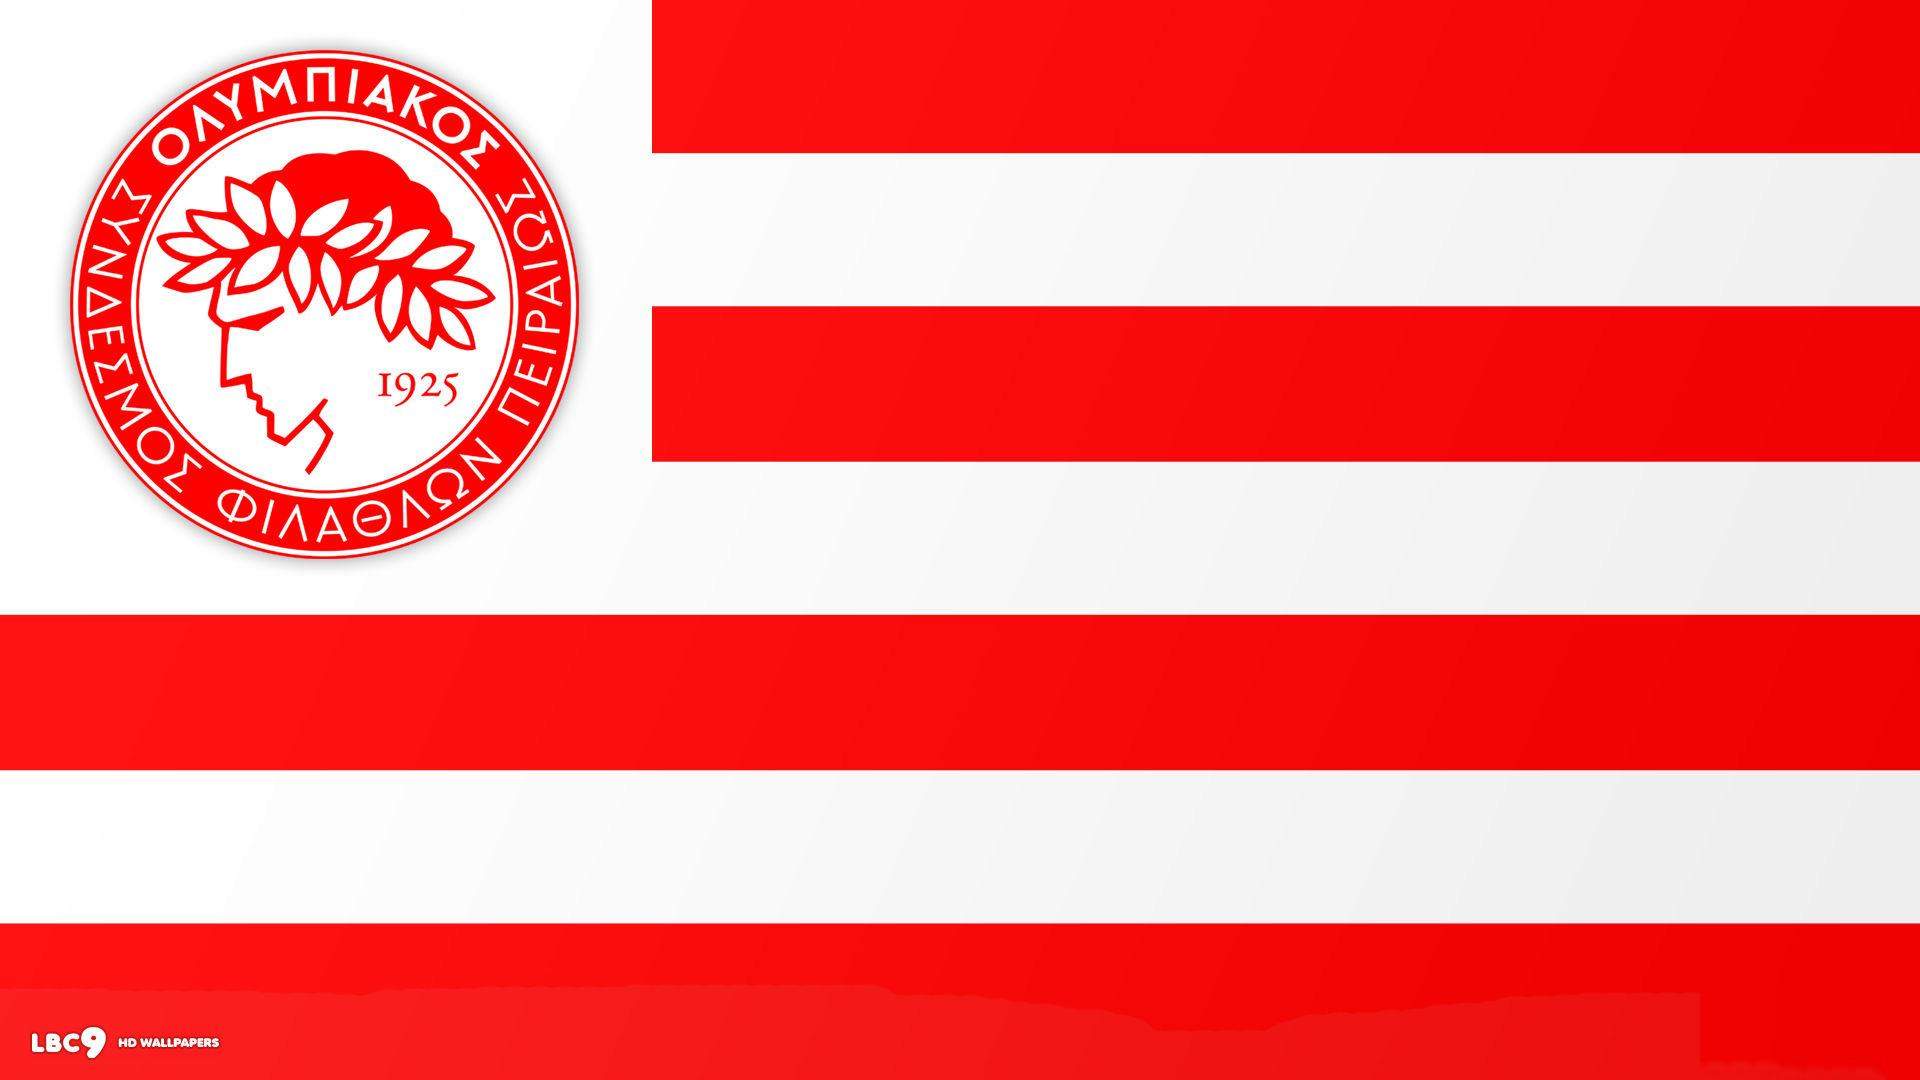 Olympiacos F.C. Wallpaper 12 - 1920 X 1080 | stmed.net